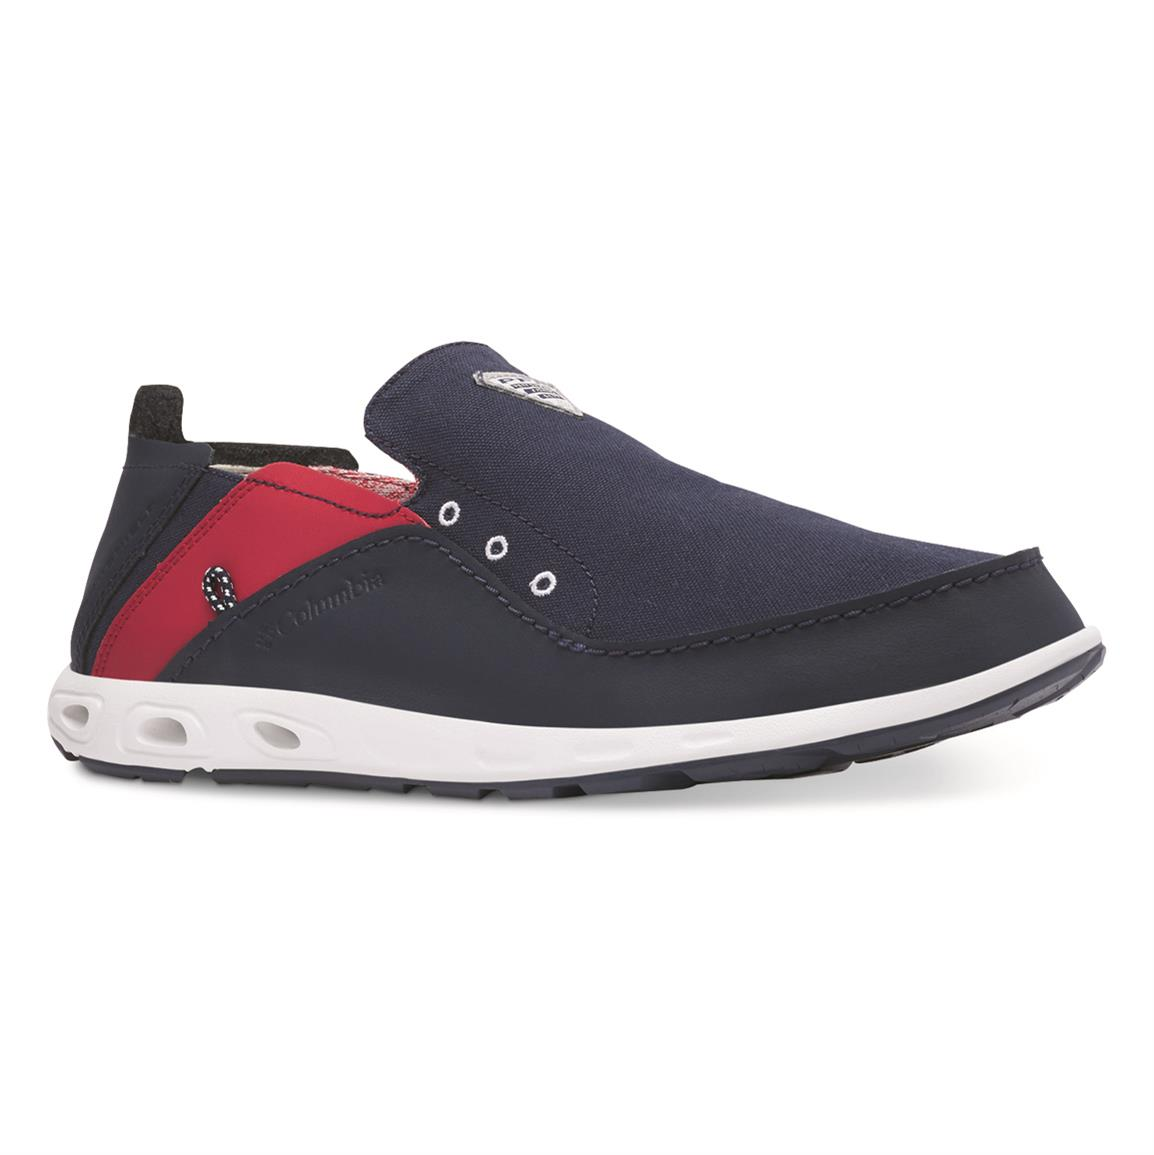 Columbia Men's Bahama Vent PFG Slip On Fishing Boat Shoes, Collegiate Navy/rocket